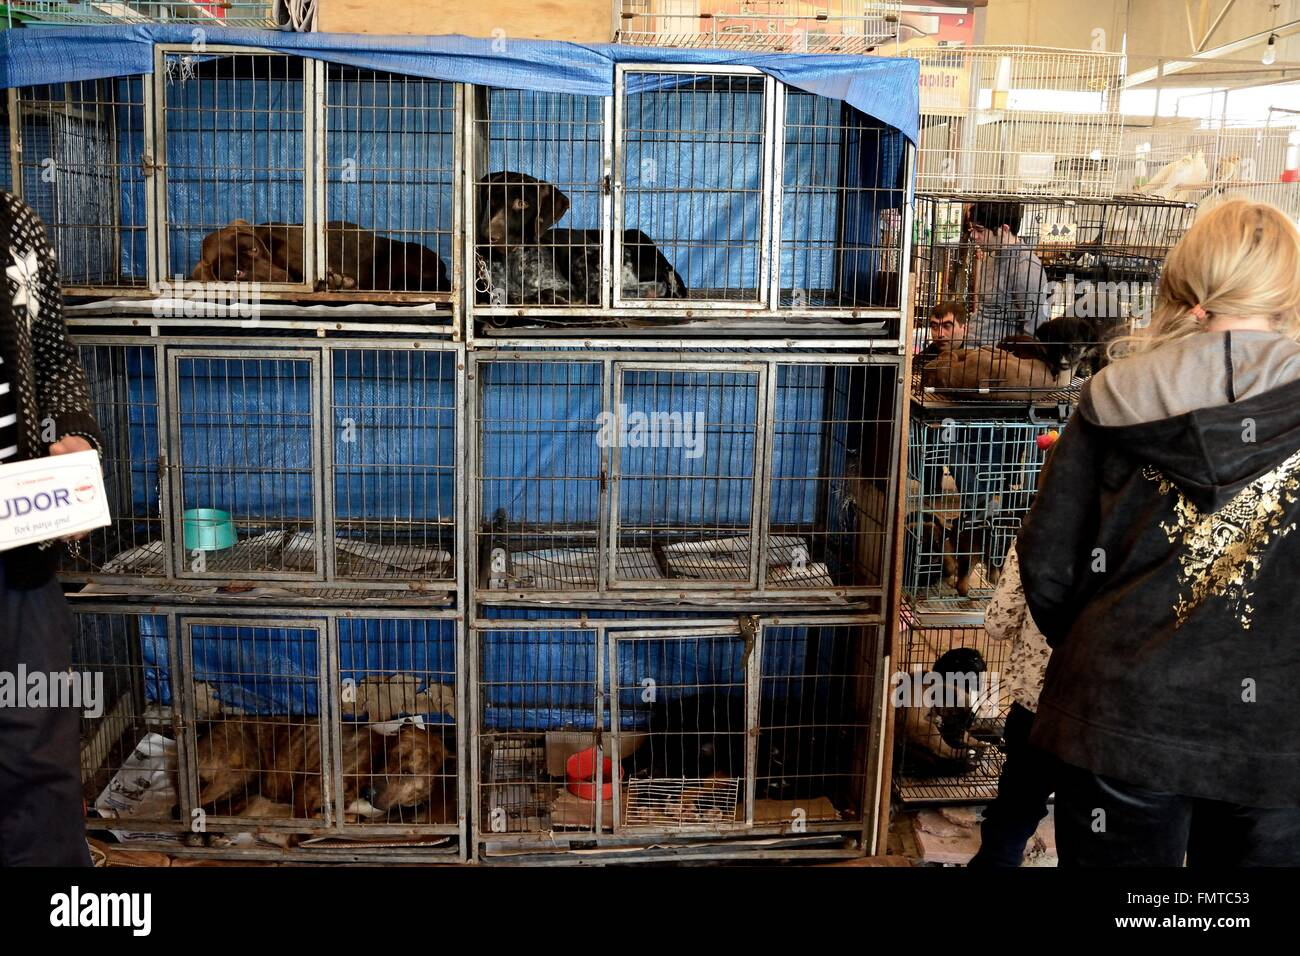 BAKU, AZERBAIJAN - MAY 8 2014 Dogs in cages for sale at a market in Azerbaijan. Animal welfare is not always a priority - Stock Image